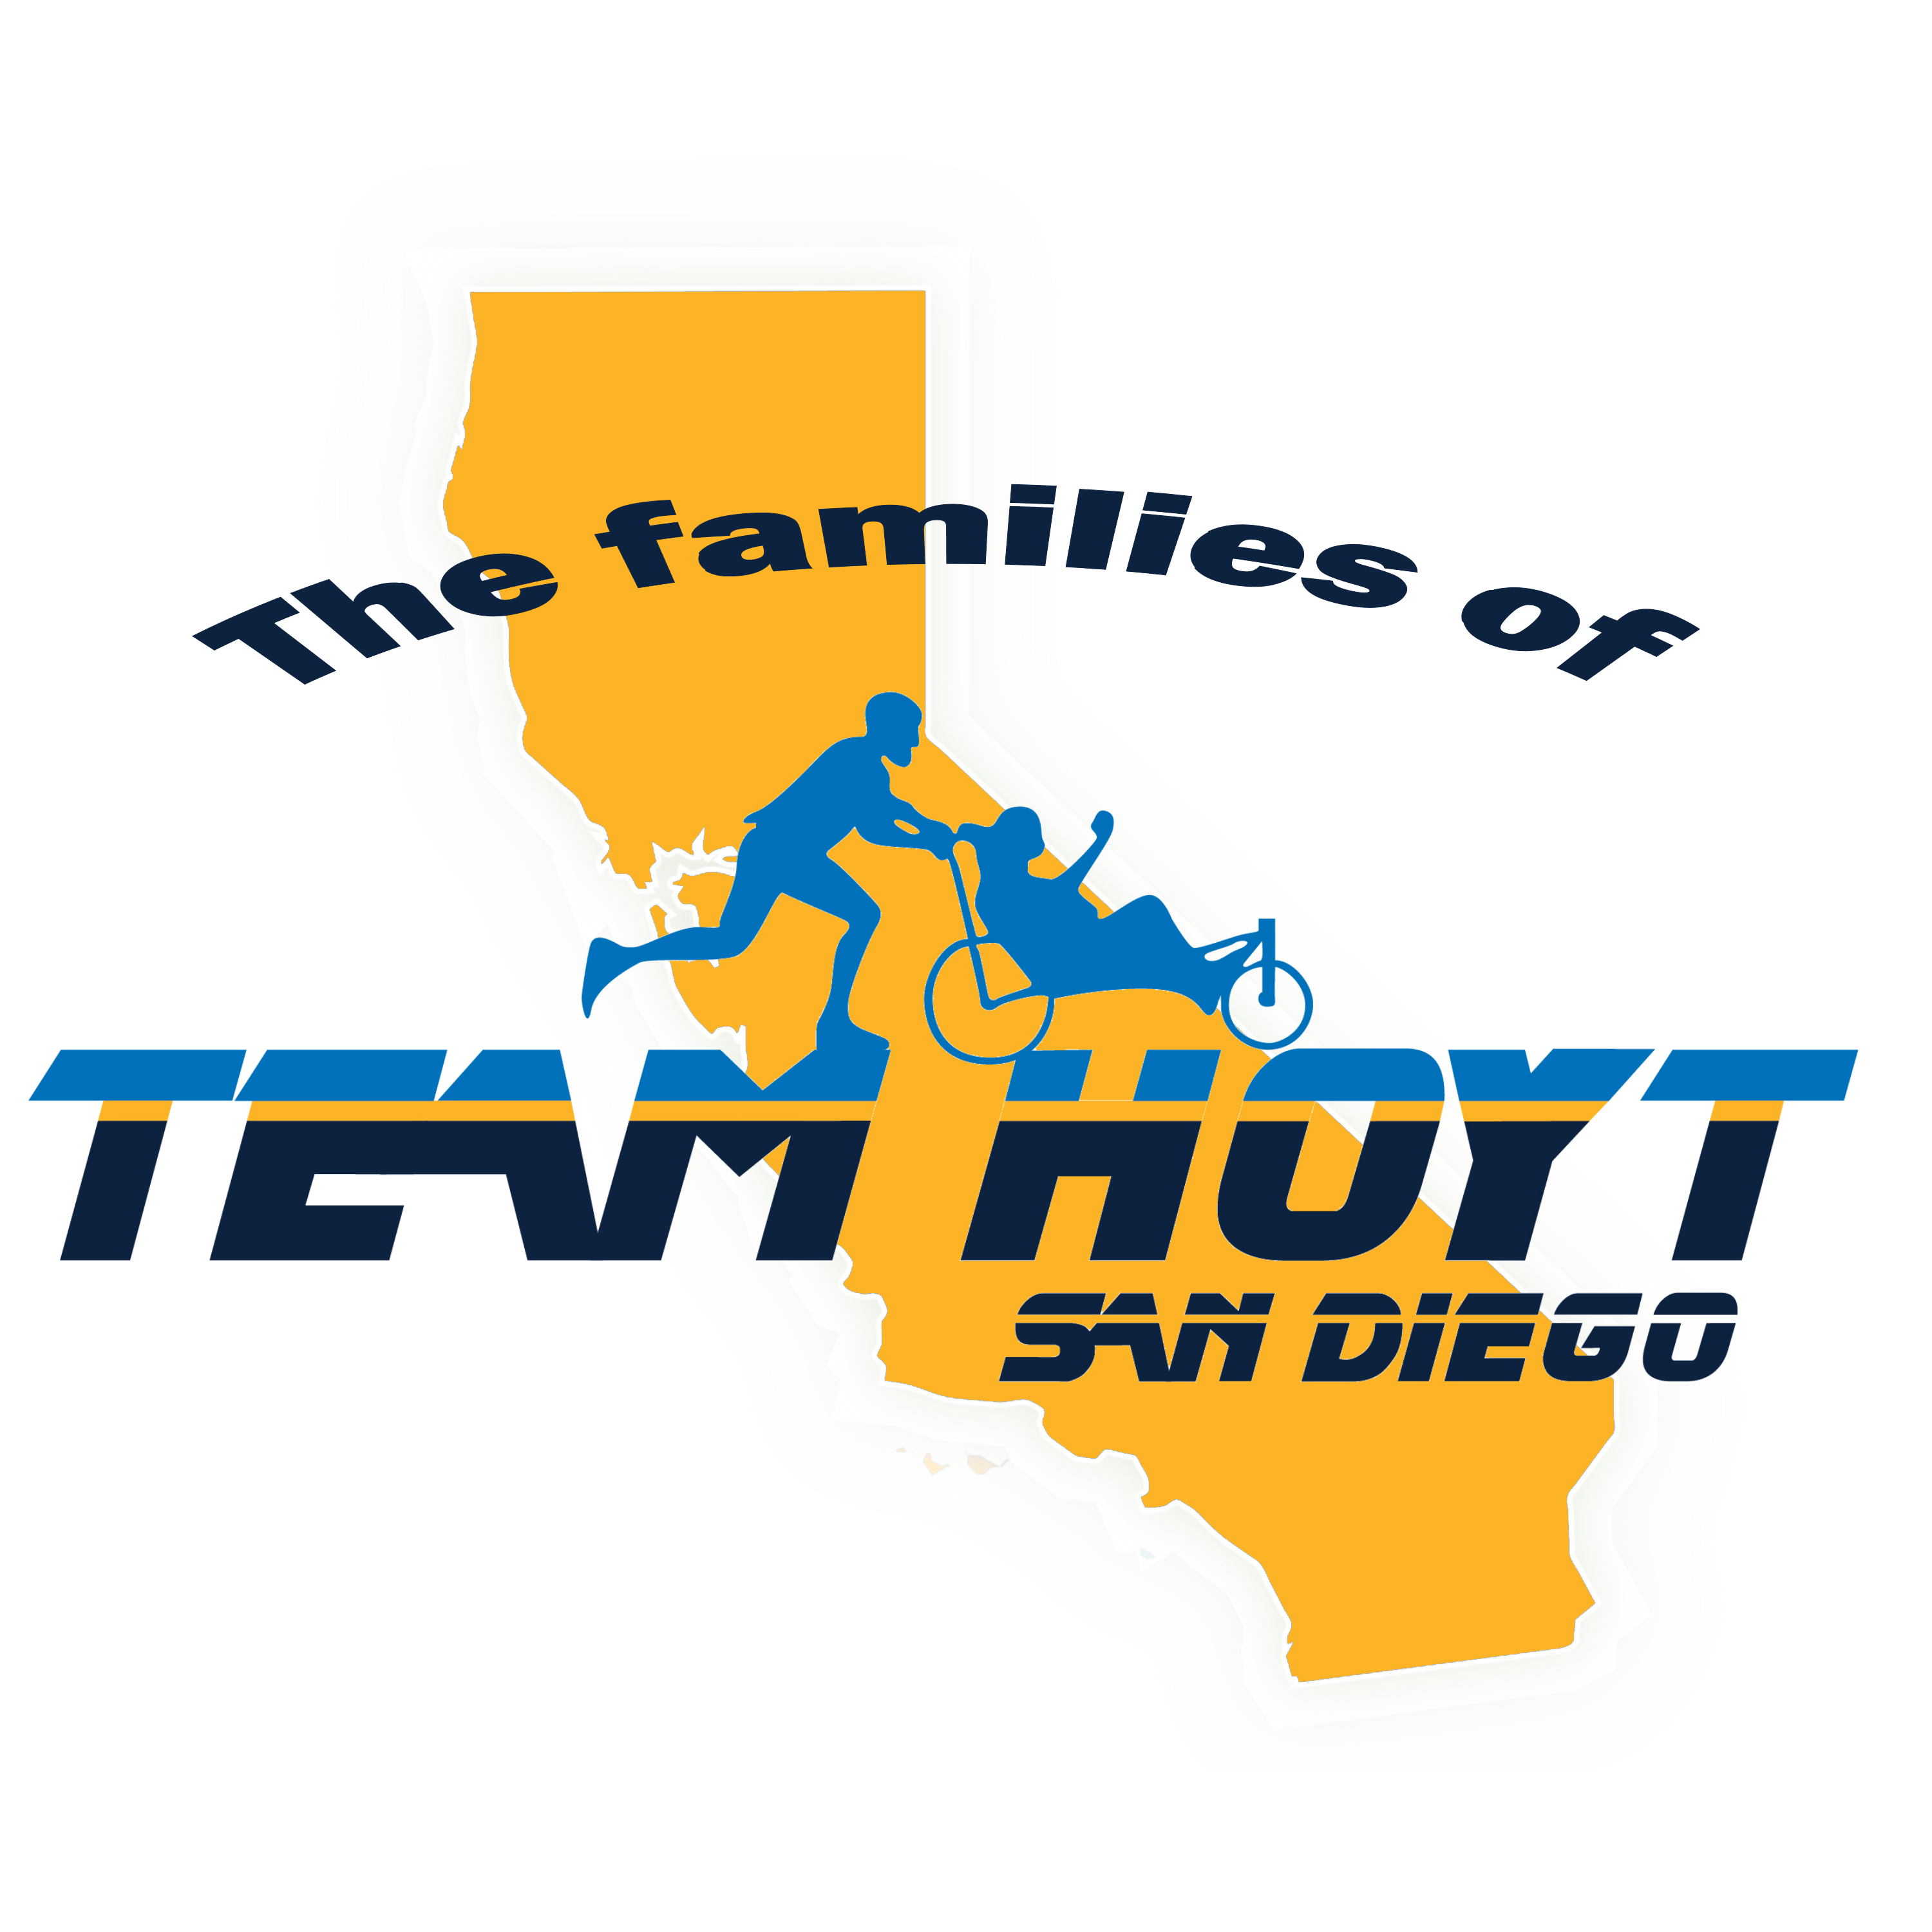 Sponsor The Families of Team Hoyt San Diego